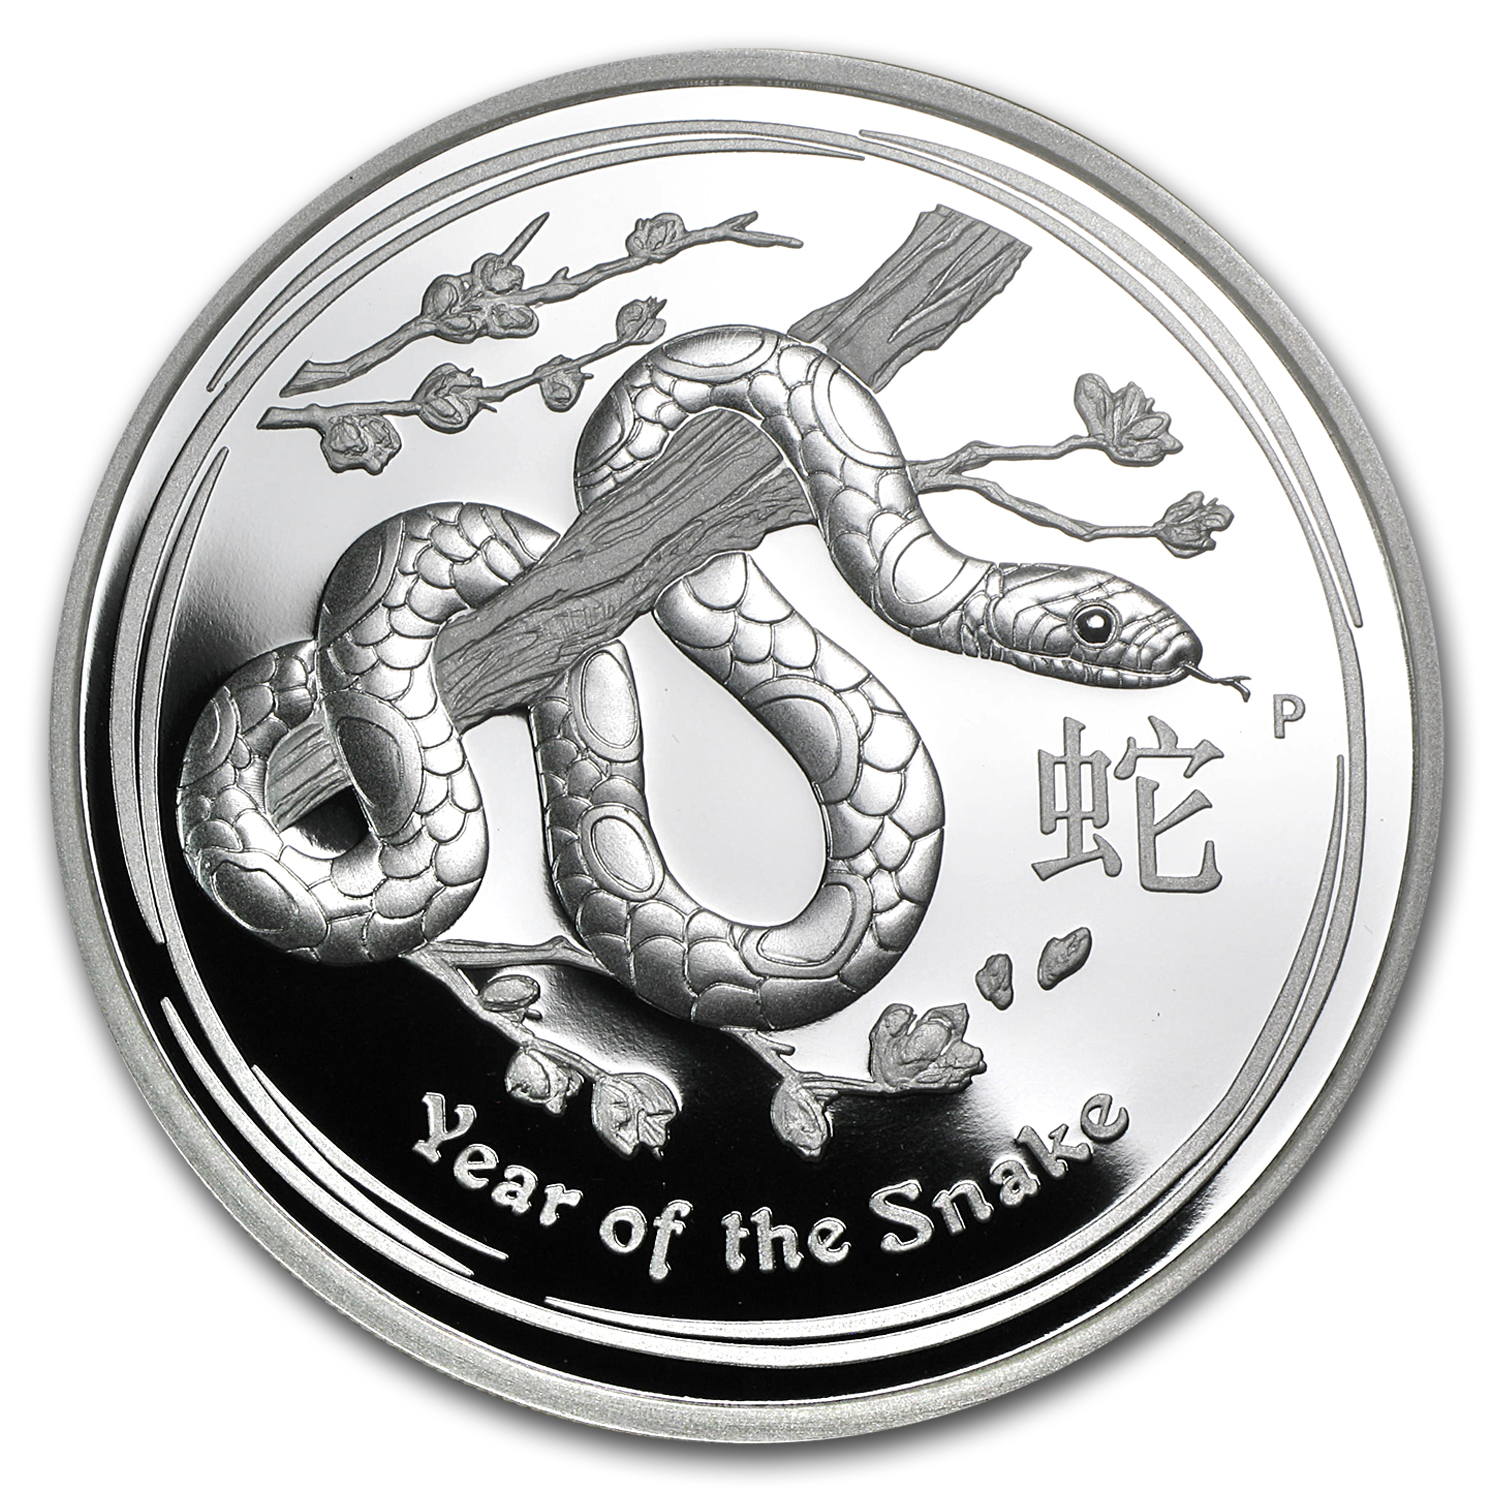 2013 5 oz Silver Australian Year of the Snake Proof